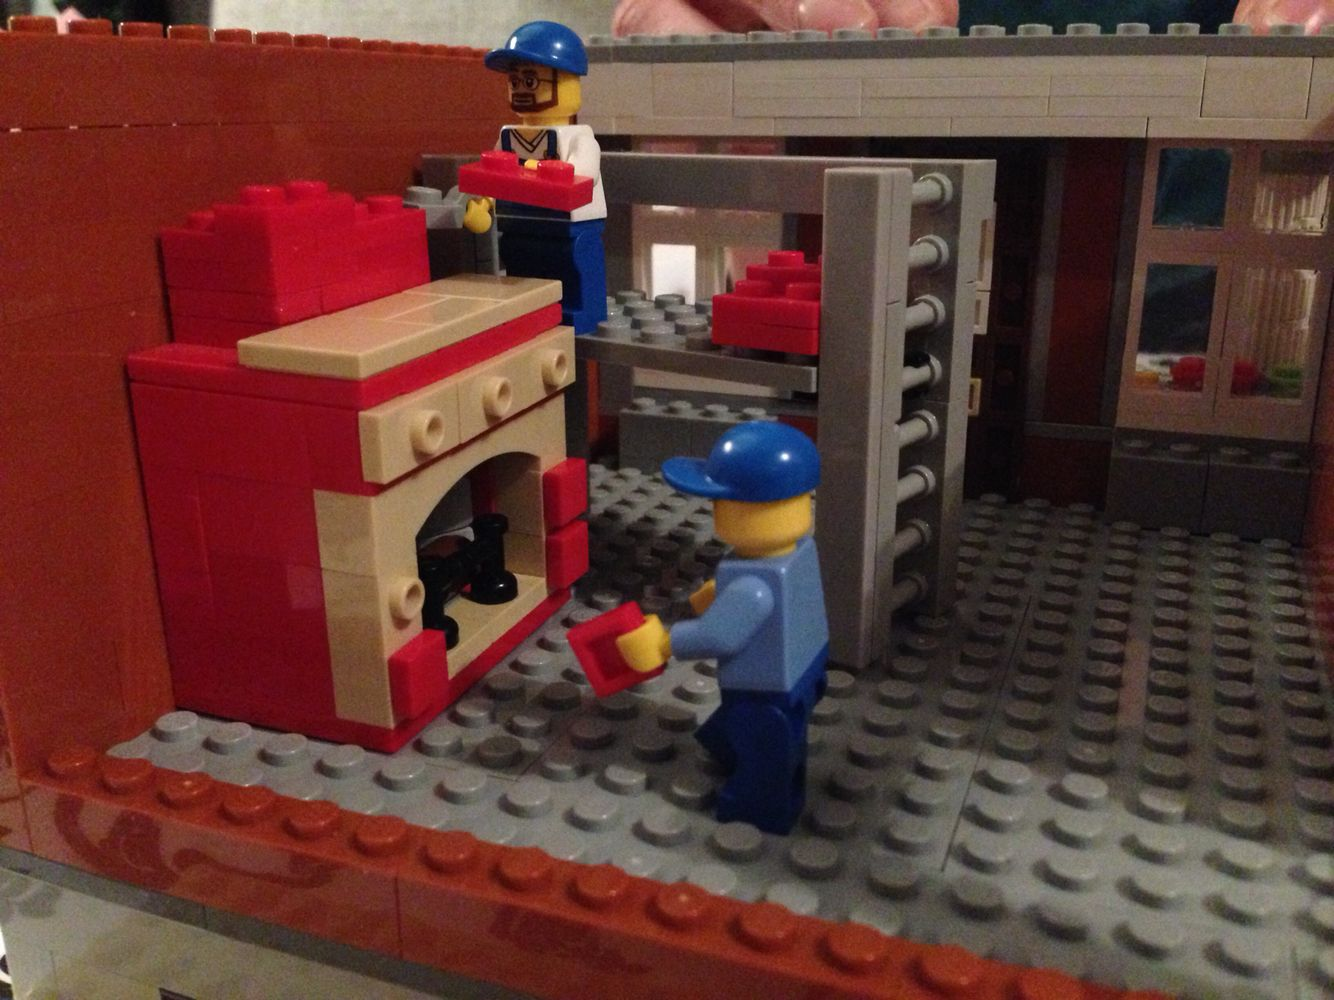 Lego moc dollhouse construction pic.